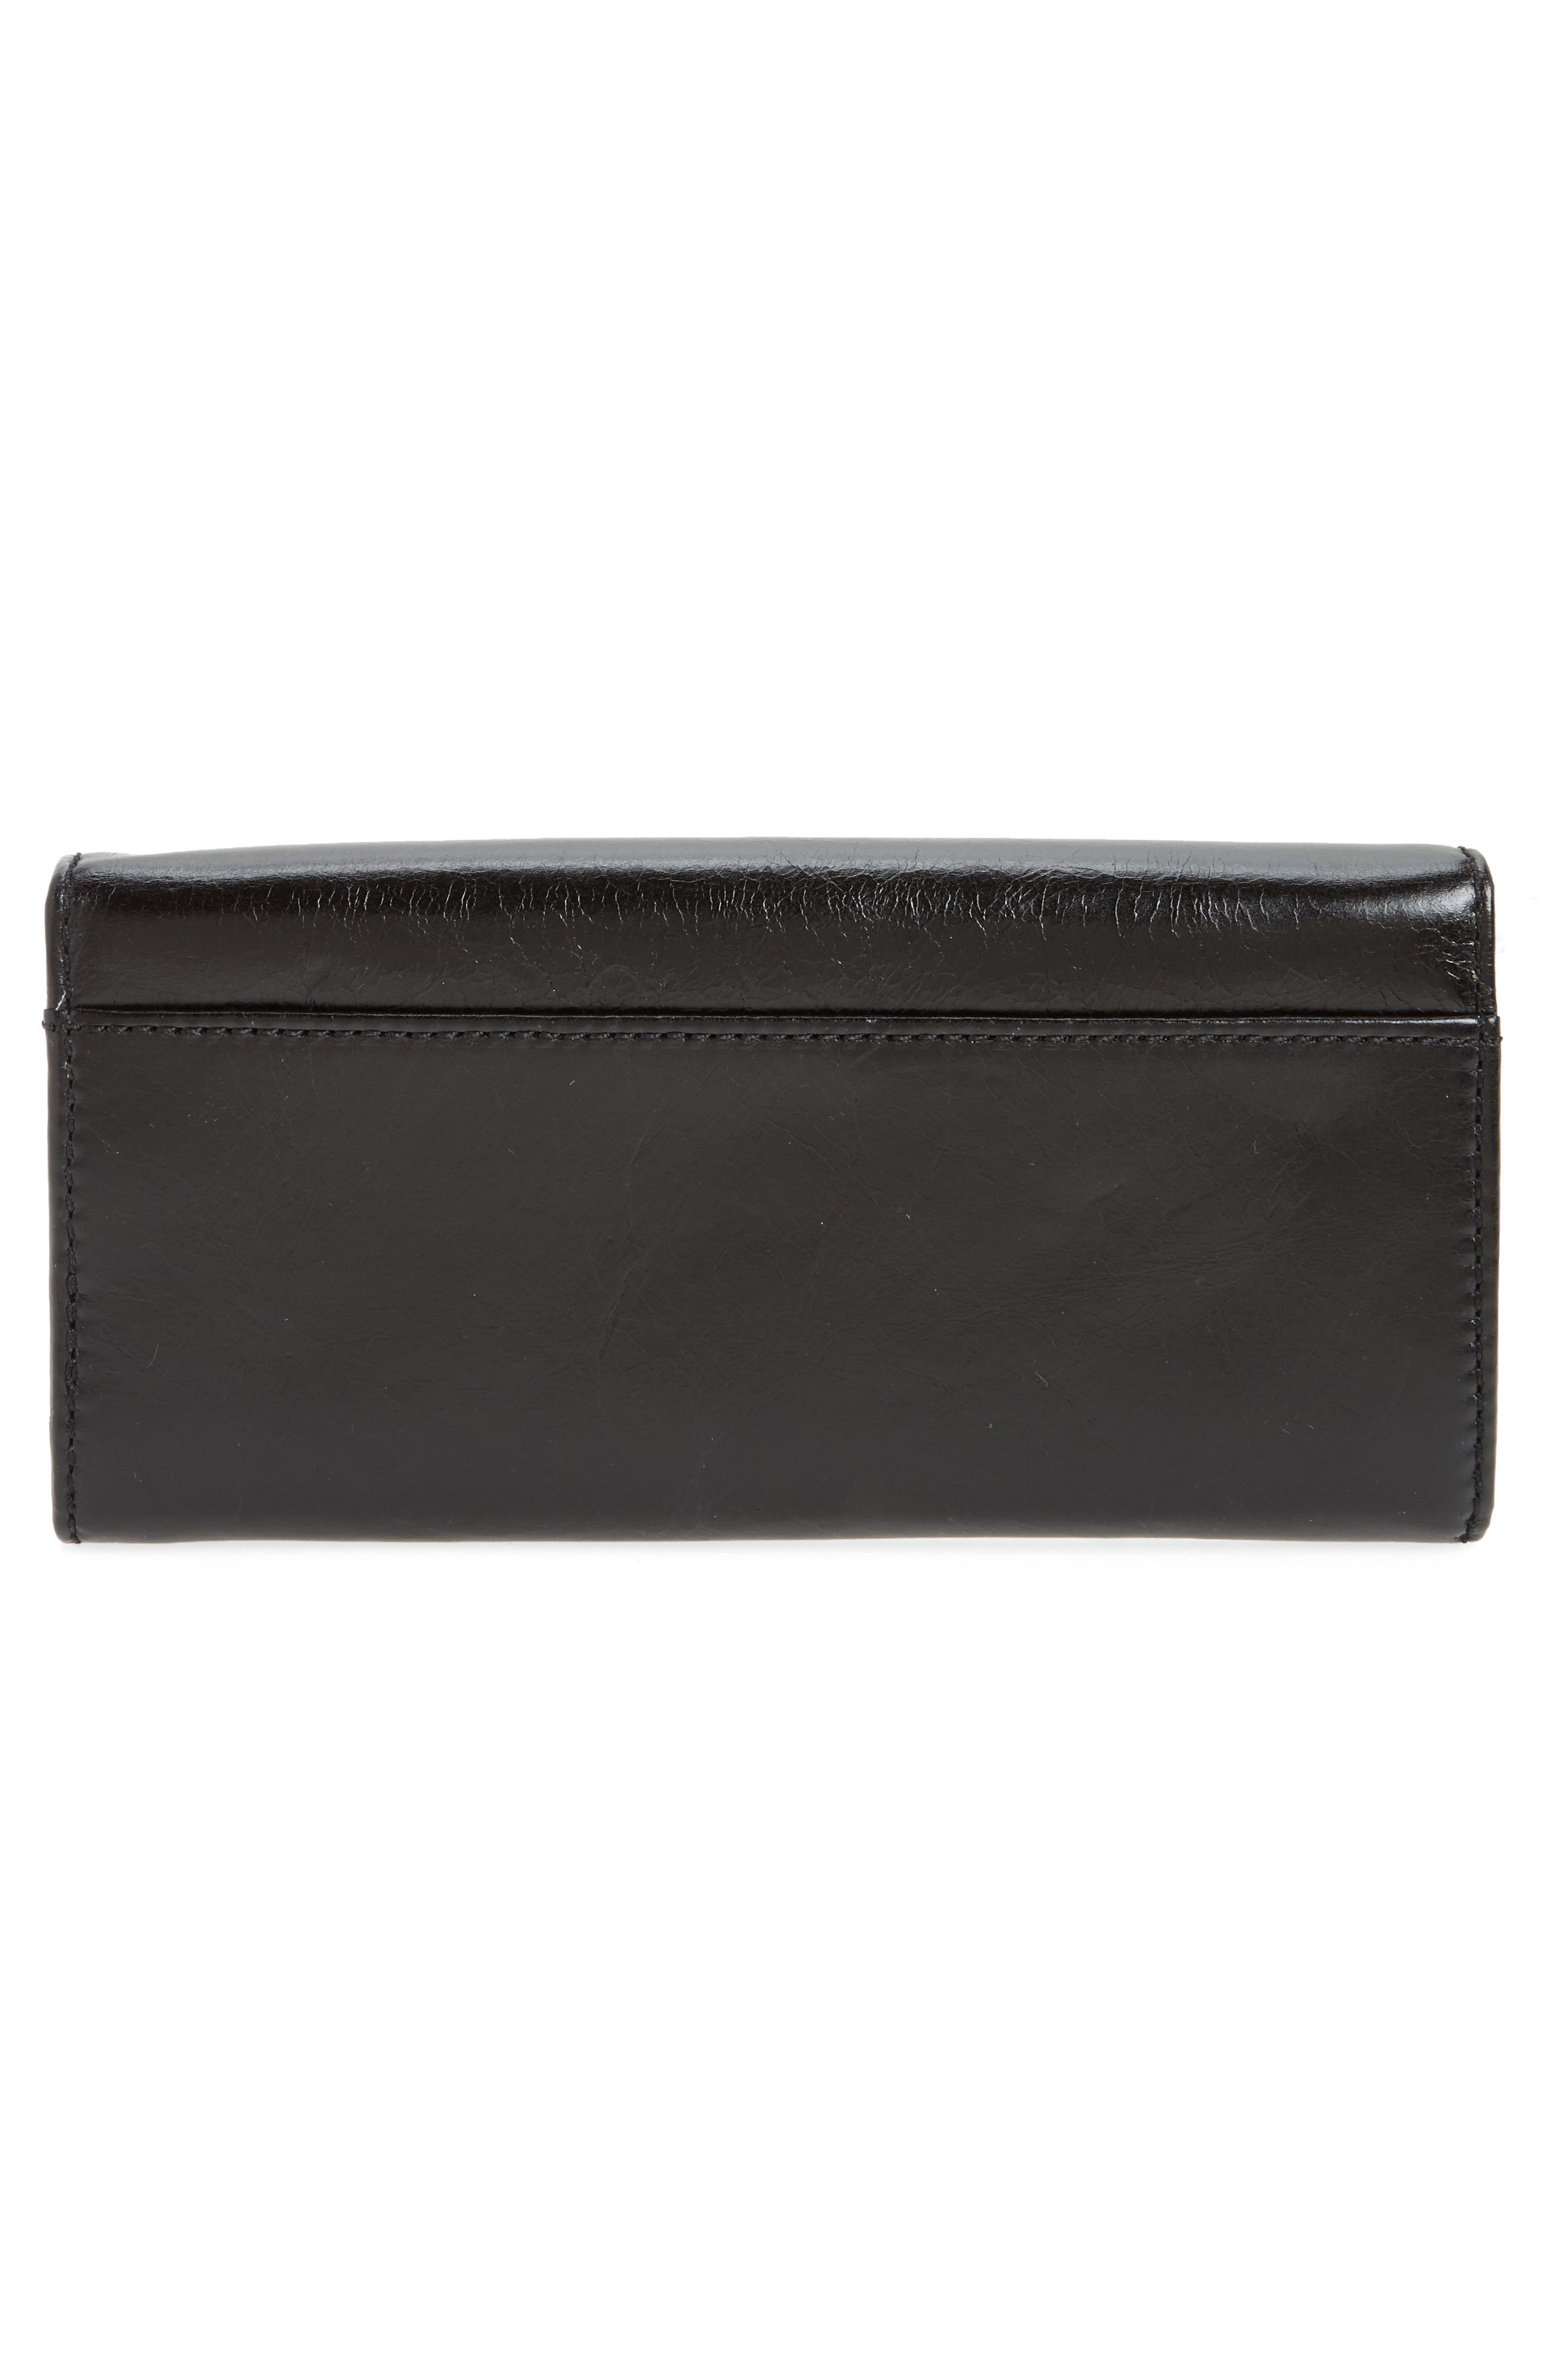 Rider Leather Wallet,                             Alternate thumbnail 3, color,                             001